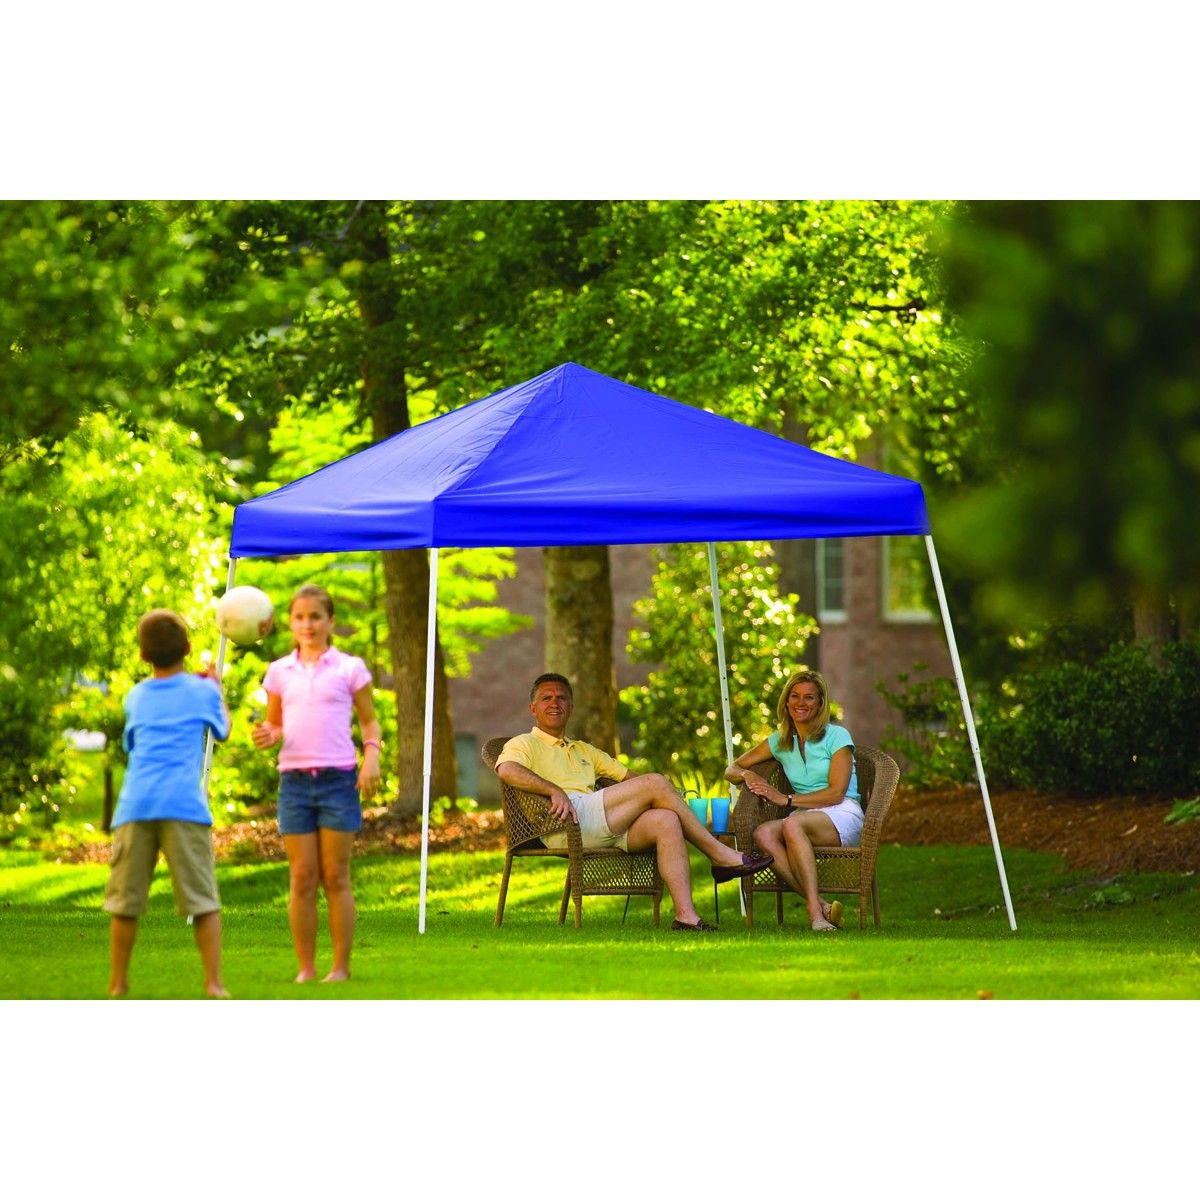 10 Ft X 10 Ft Slant Leg Pop Up Canopy Pop Up Canopy Tent Canopy Tent Canopy